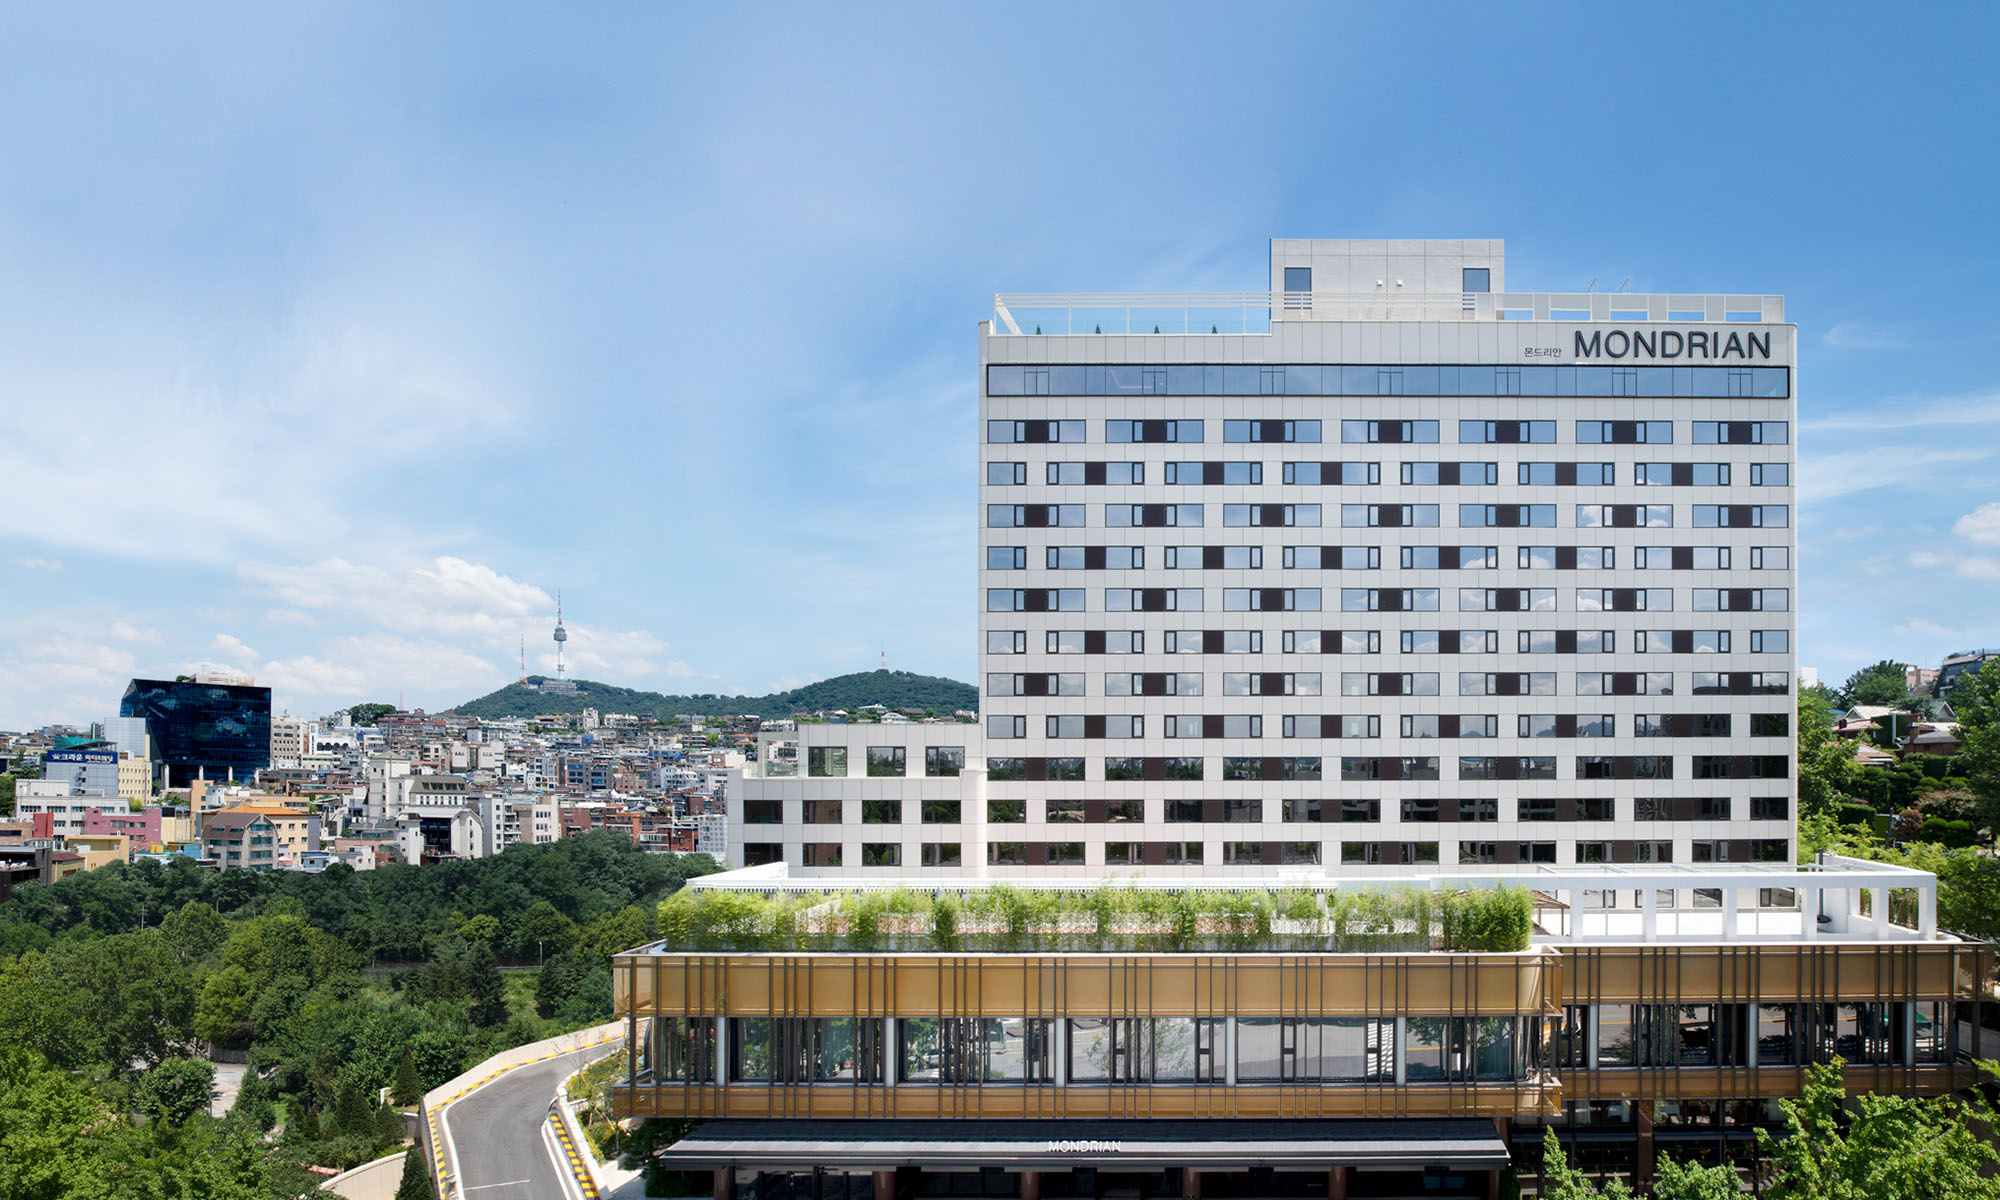 Accor and sbe unveil first Mondrian hotel in Asia